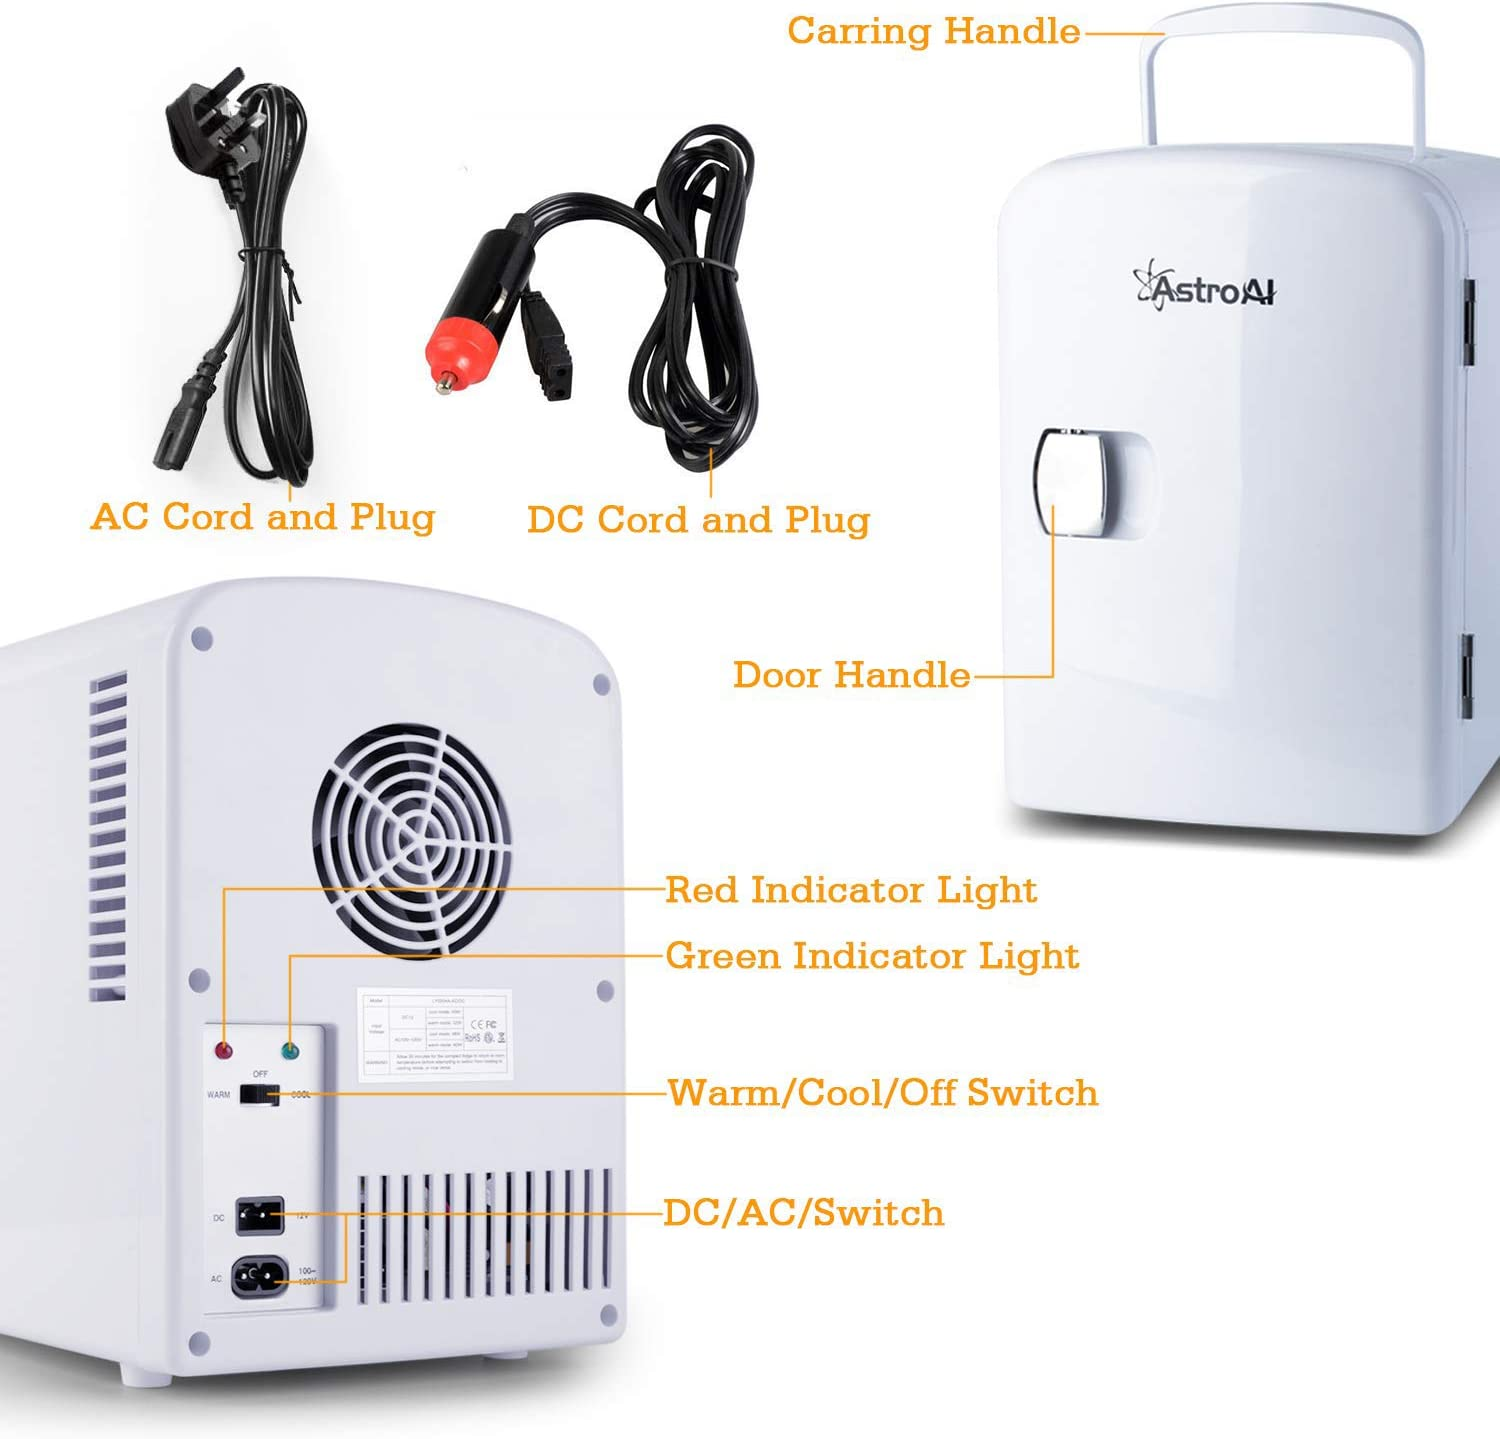 and Dorms Offices AstroAI Mini Fridge 4 Liter//6 Can Portable AC//DC Powered Thermoelectric System Cooler and Warmer for Cars Homes